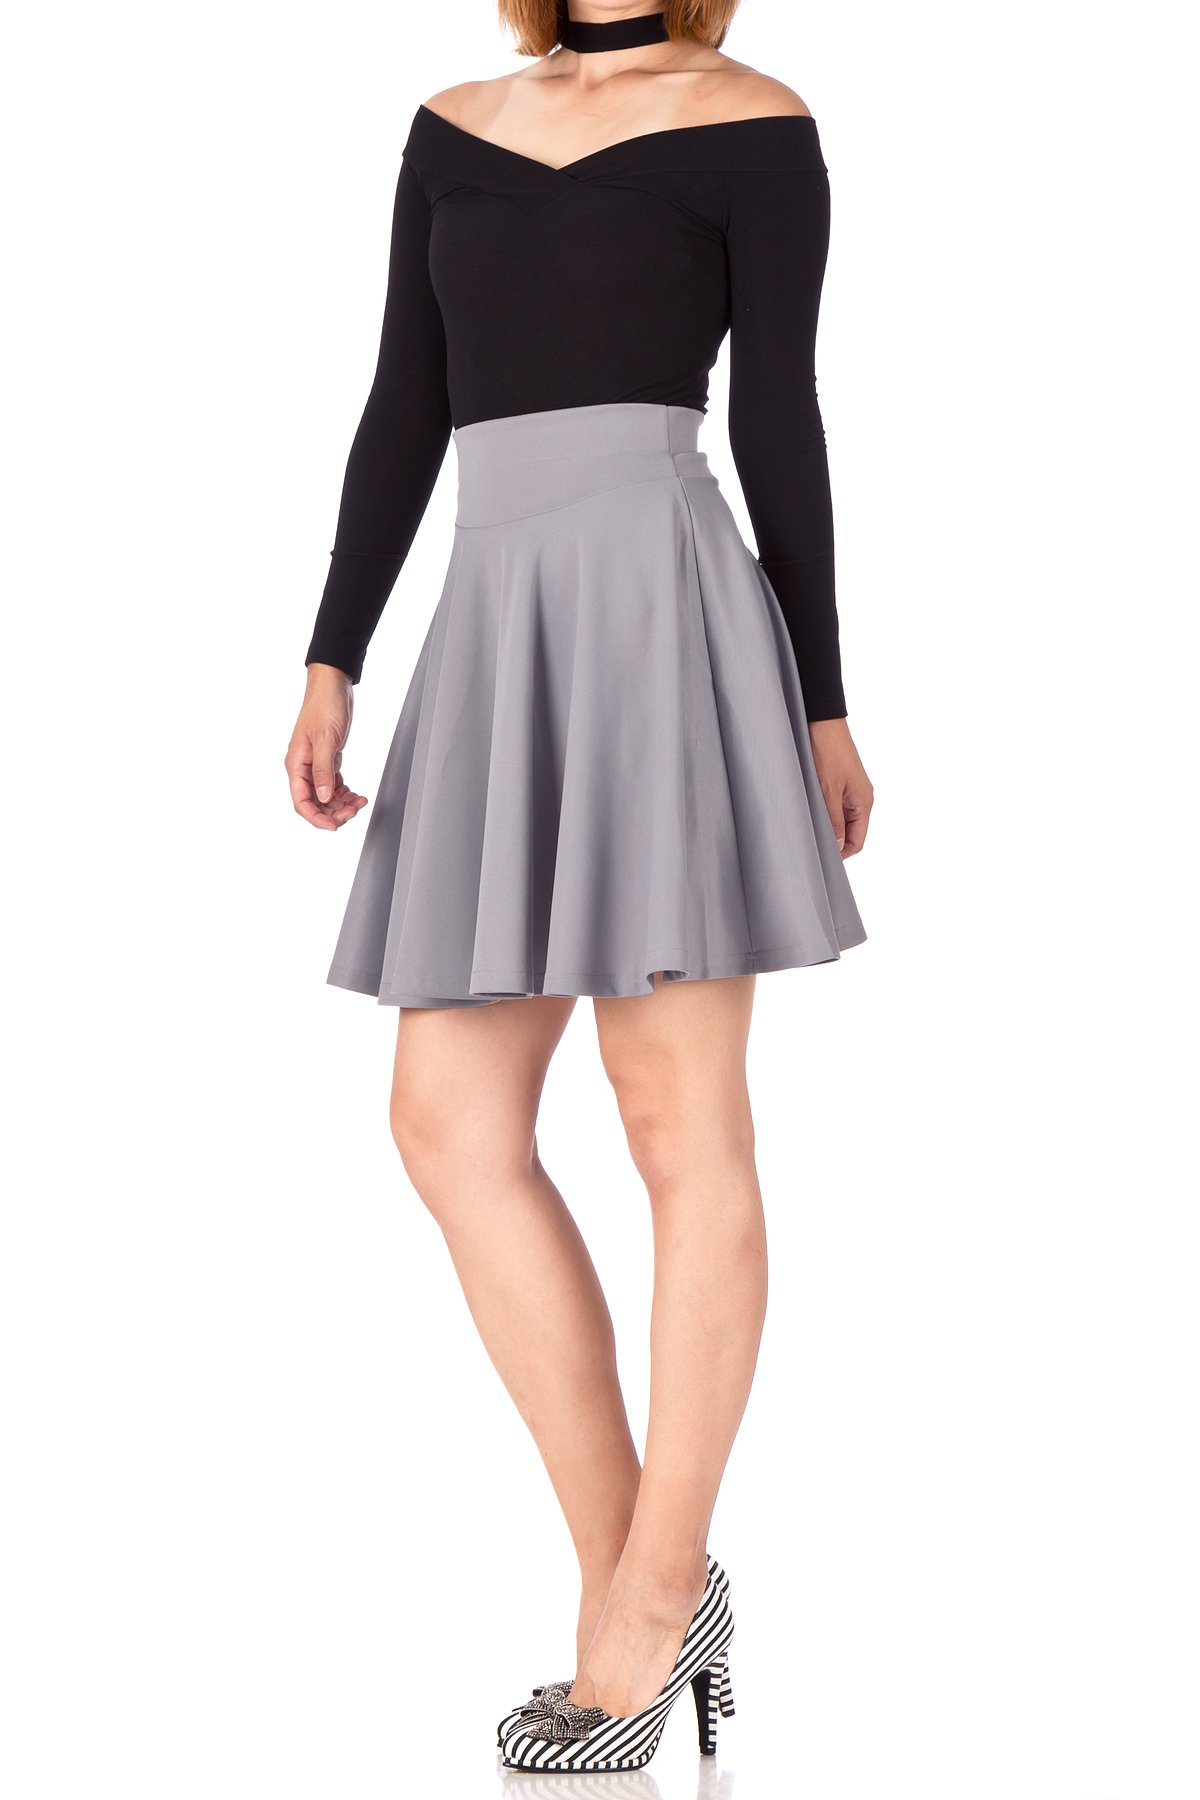 Breathtaking High Waist A line Circle Full Flared Skater Mini Skirt Light Gray 03